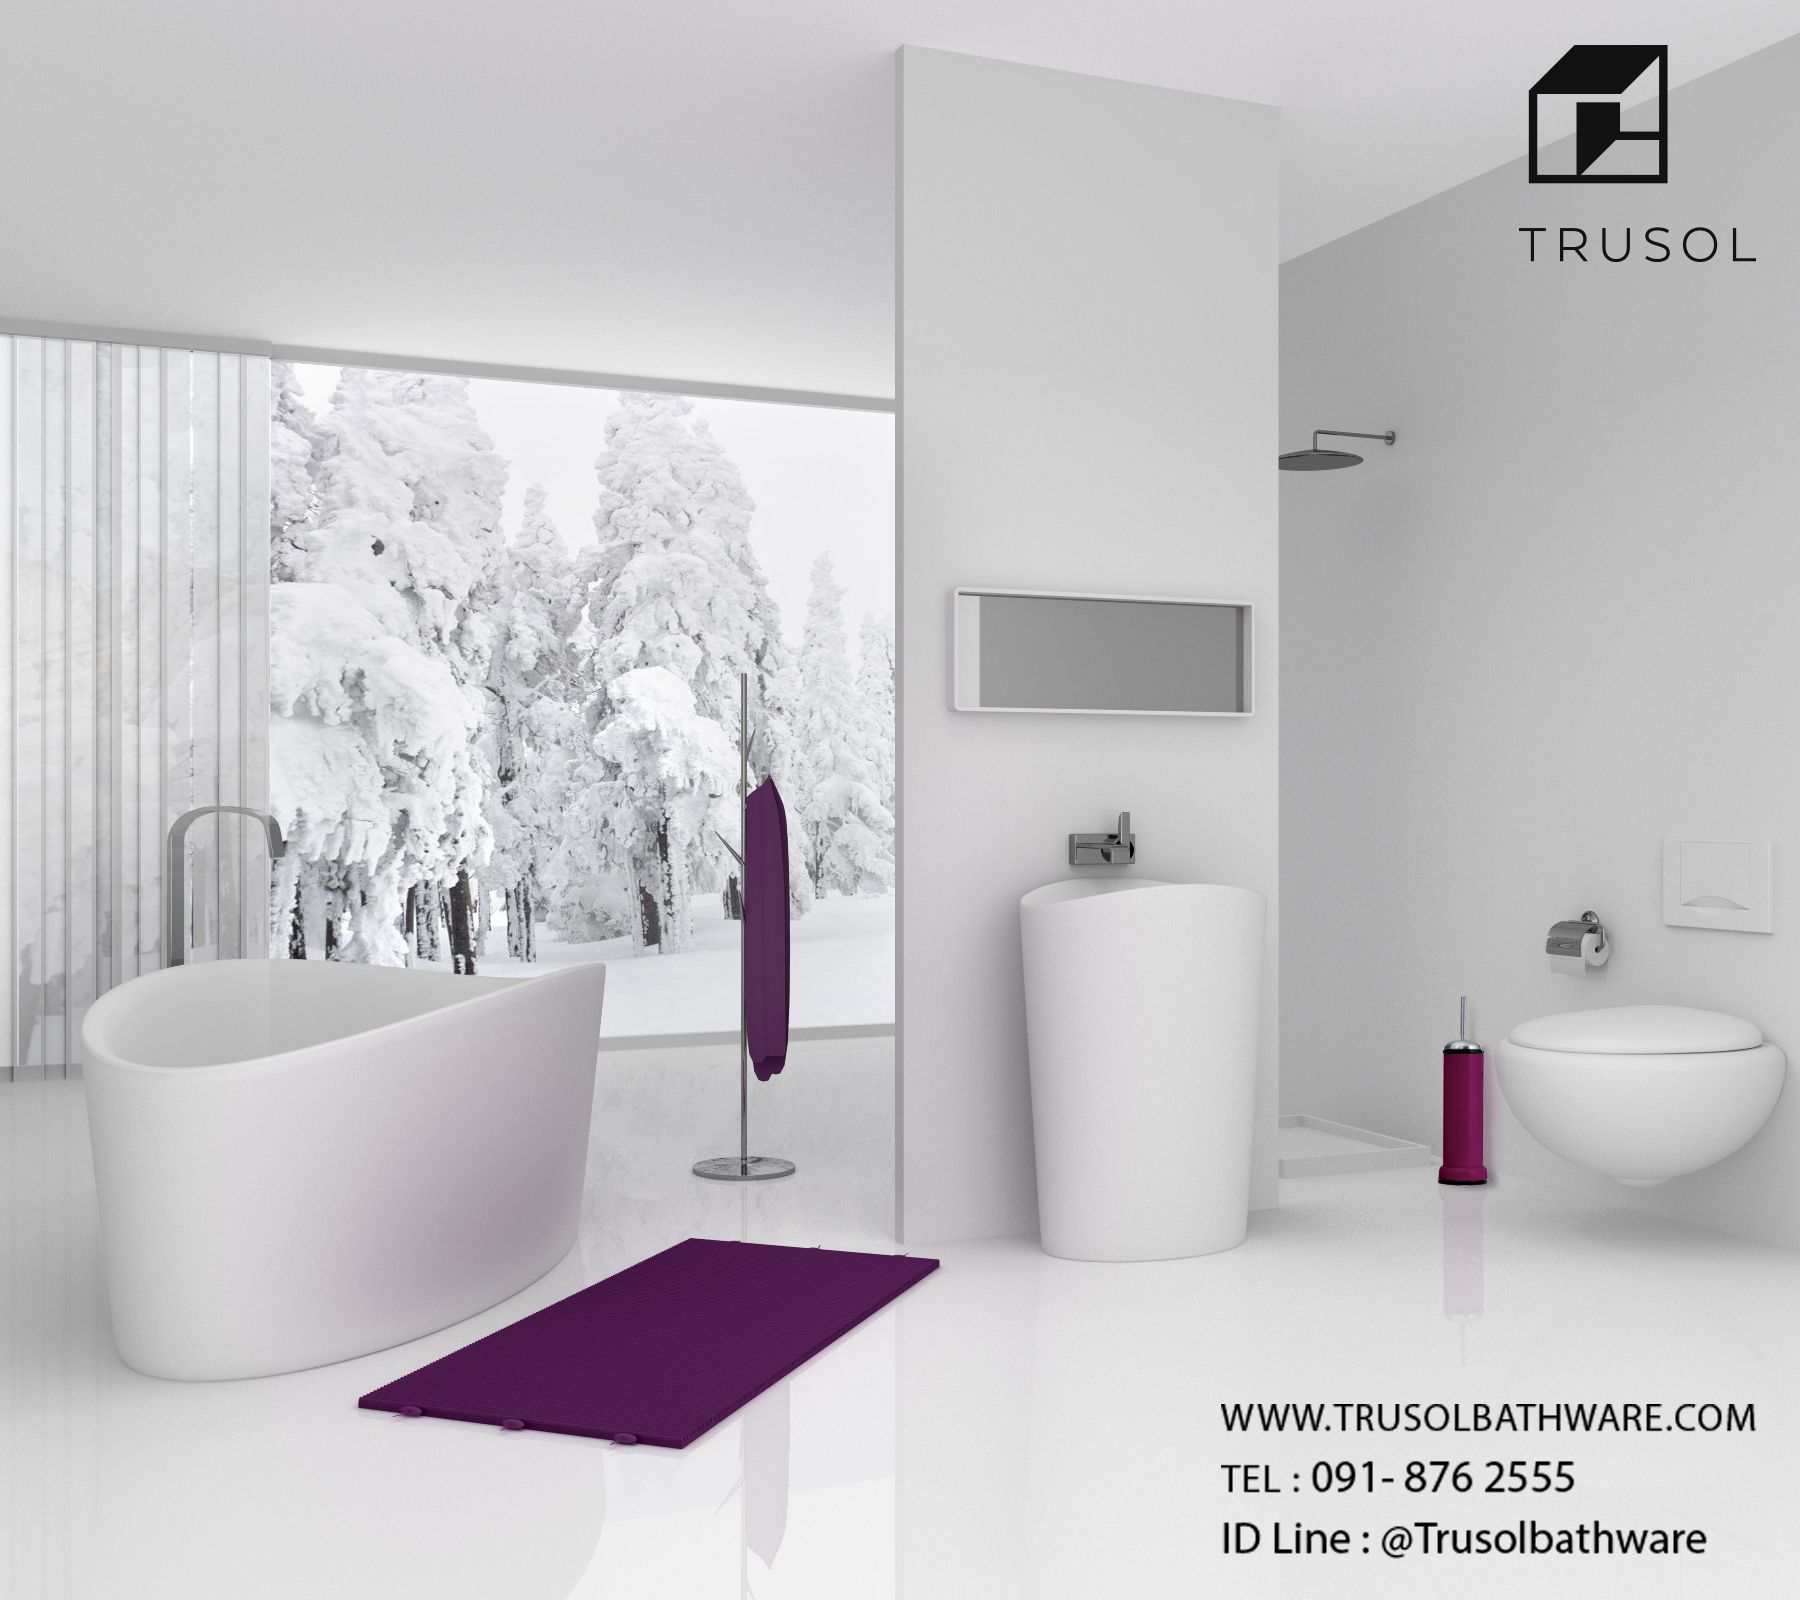 Products offer variety of Bathroom Design selection including ...